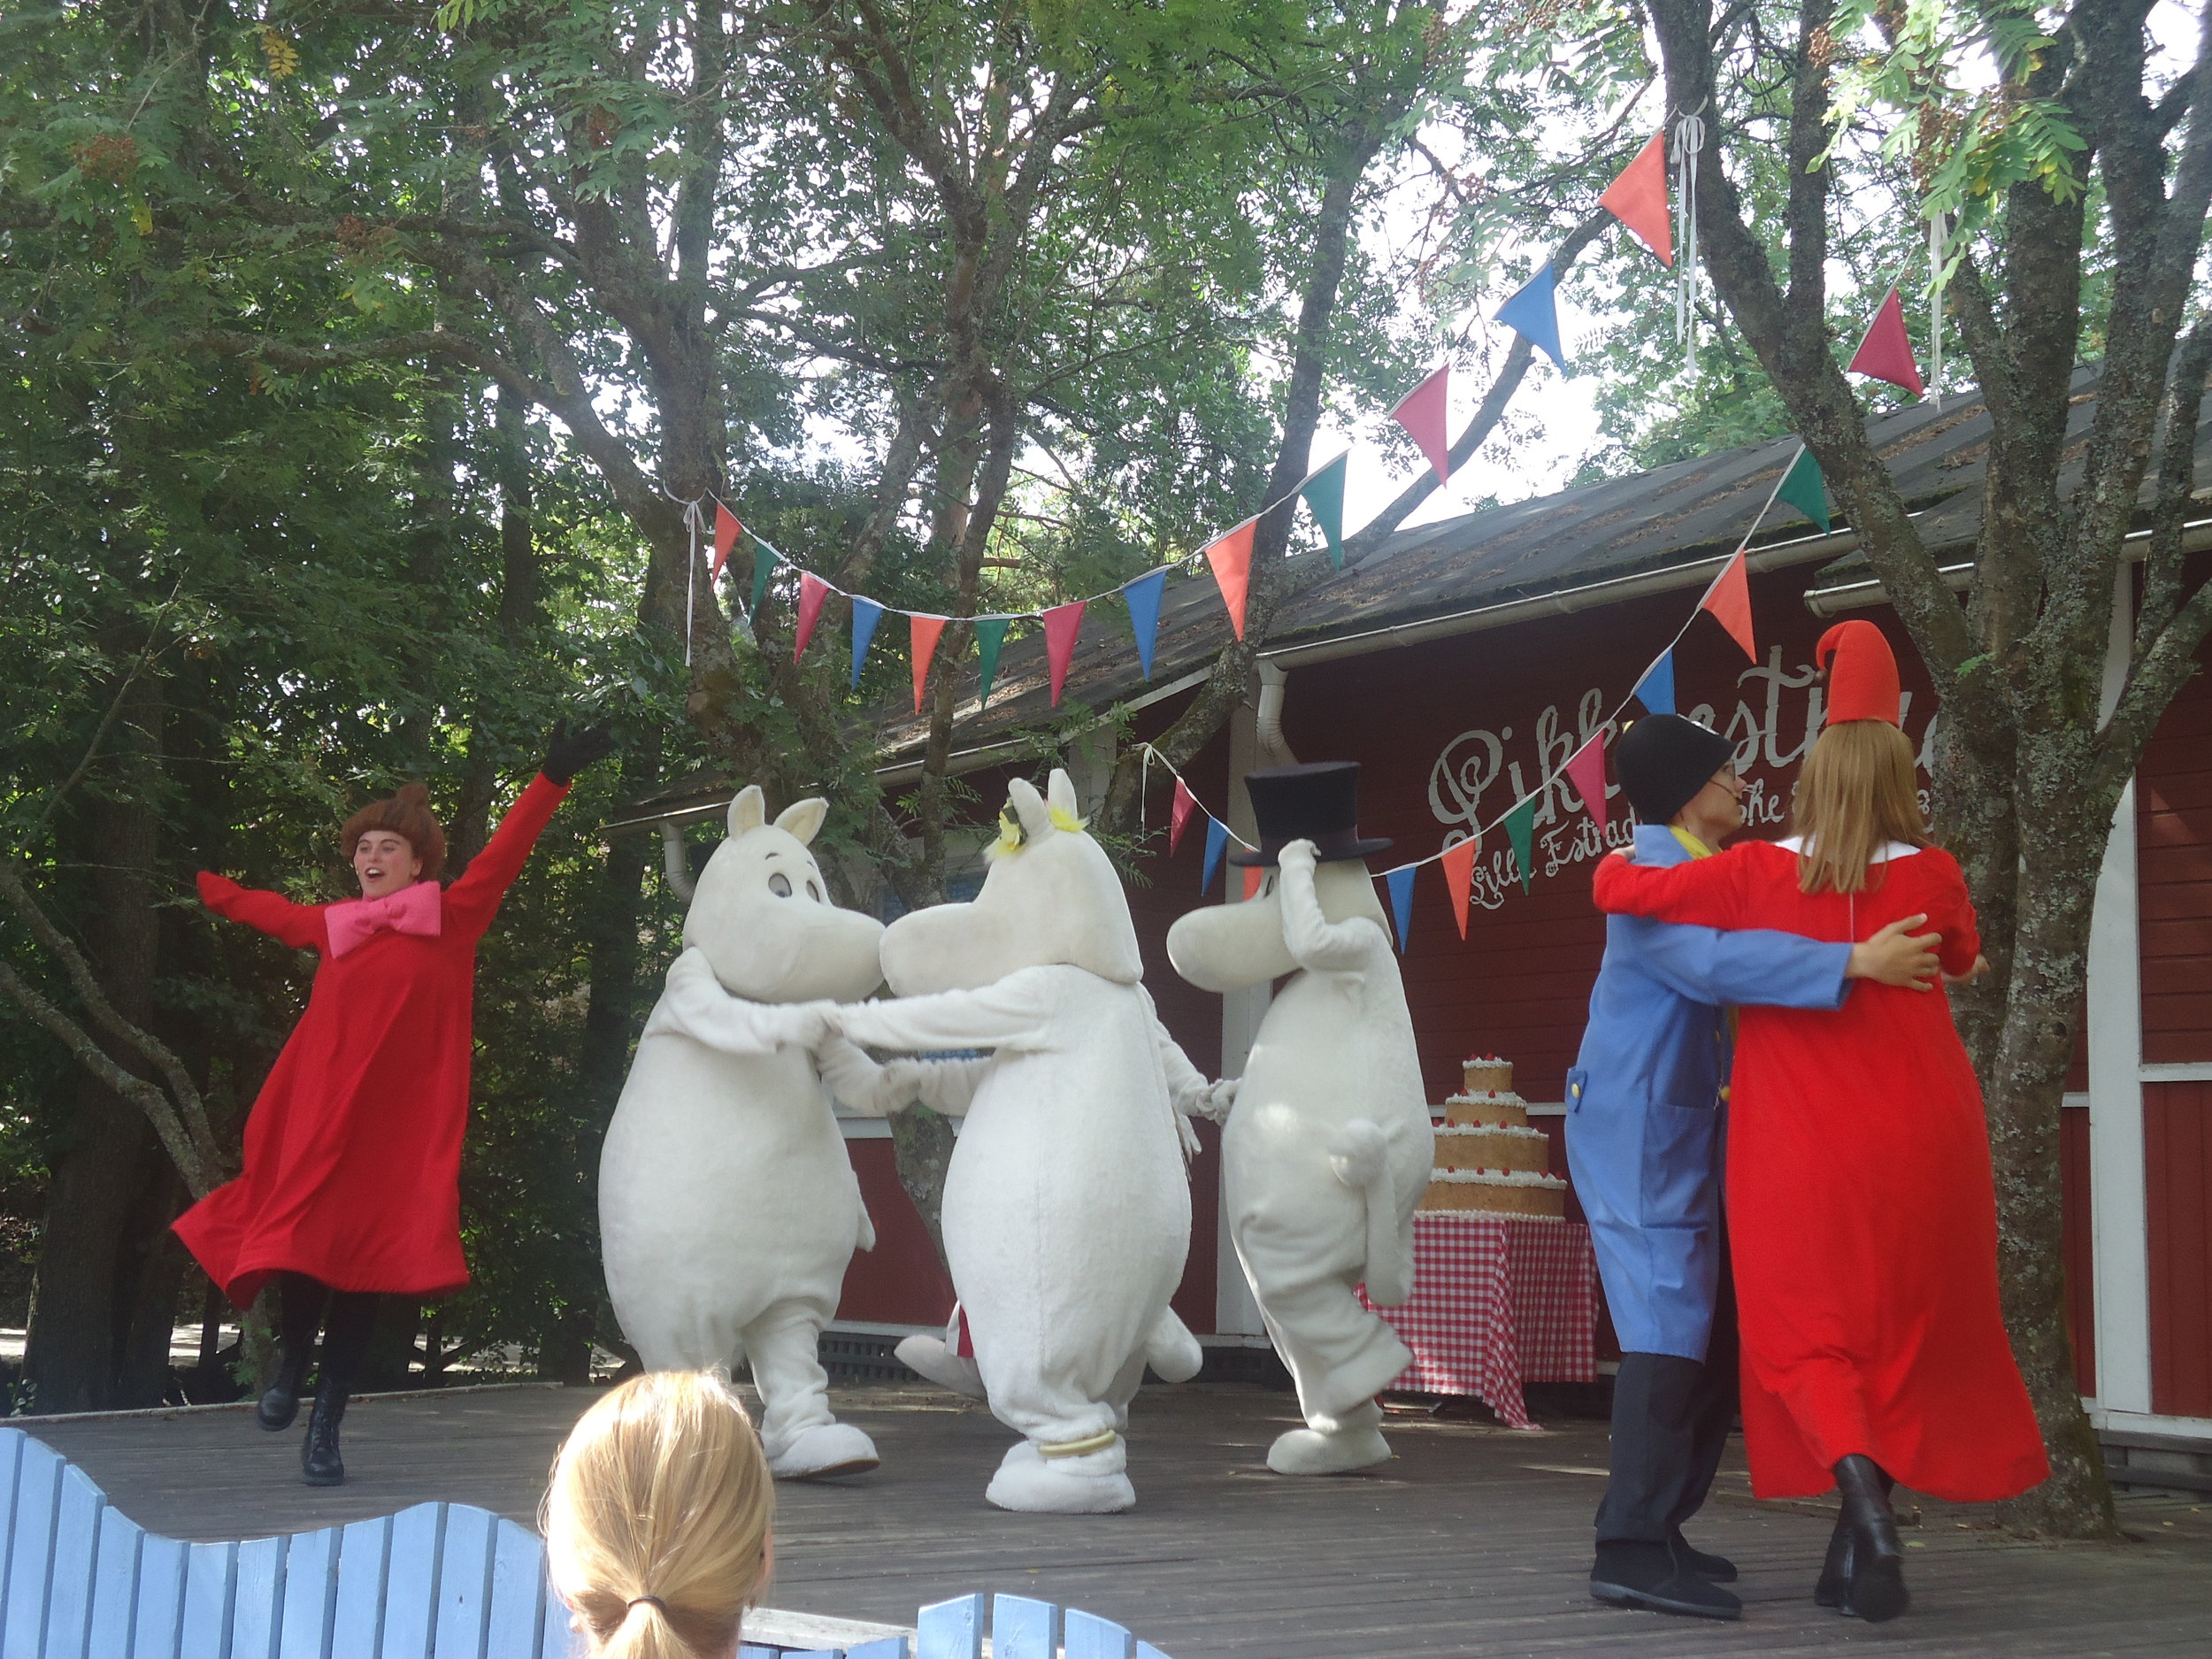 The characters from the Moomins dance away merrily and my daughter danced away too!